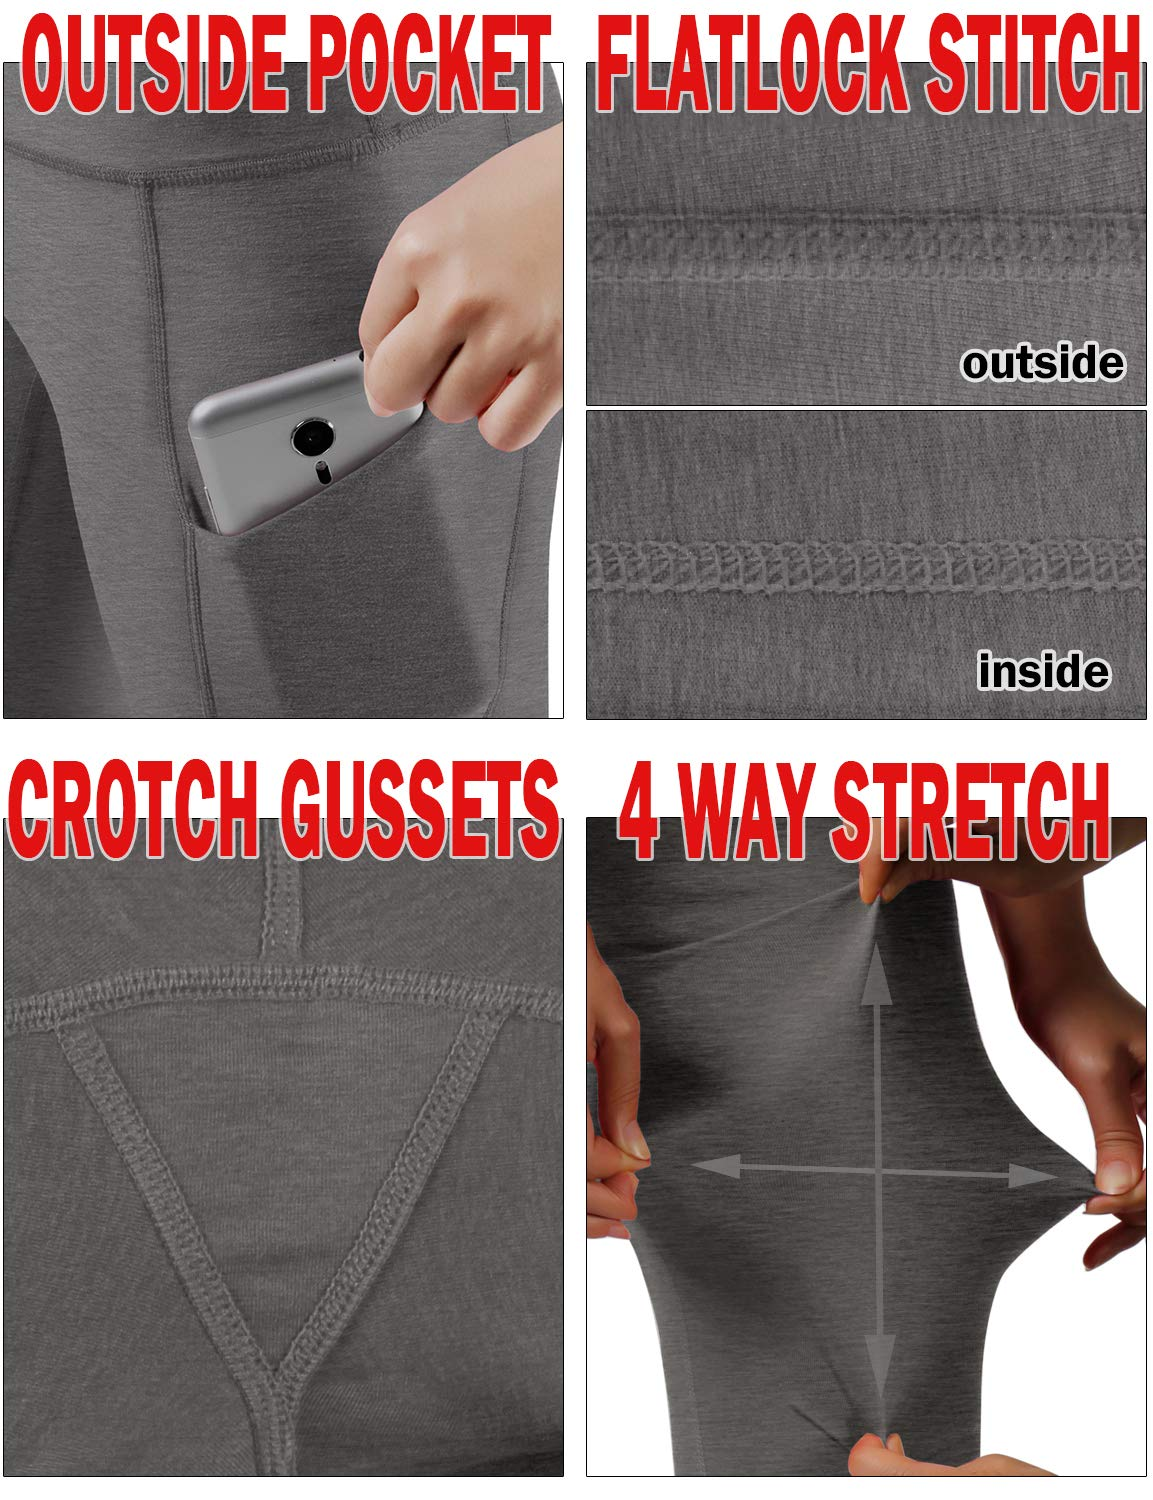 ODODOS High Waist Out Pocket Yoga Capris Pants Tummy Control Workout Running 4 Way Stretch Yoga Leggings,Gray,X-Small by ODODOS (Image #6)